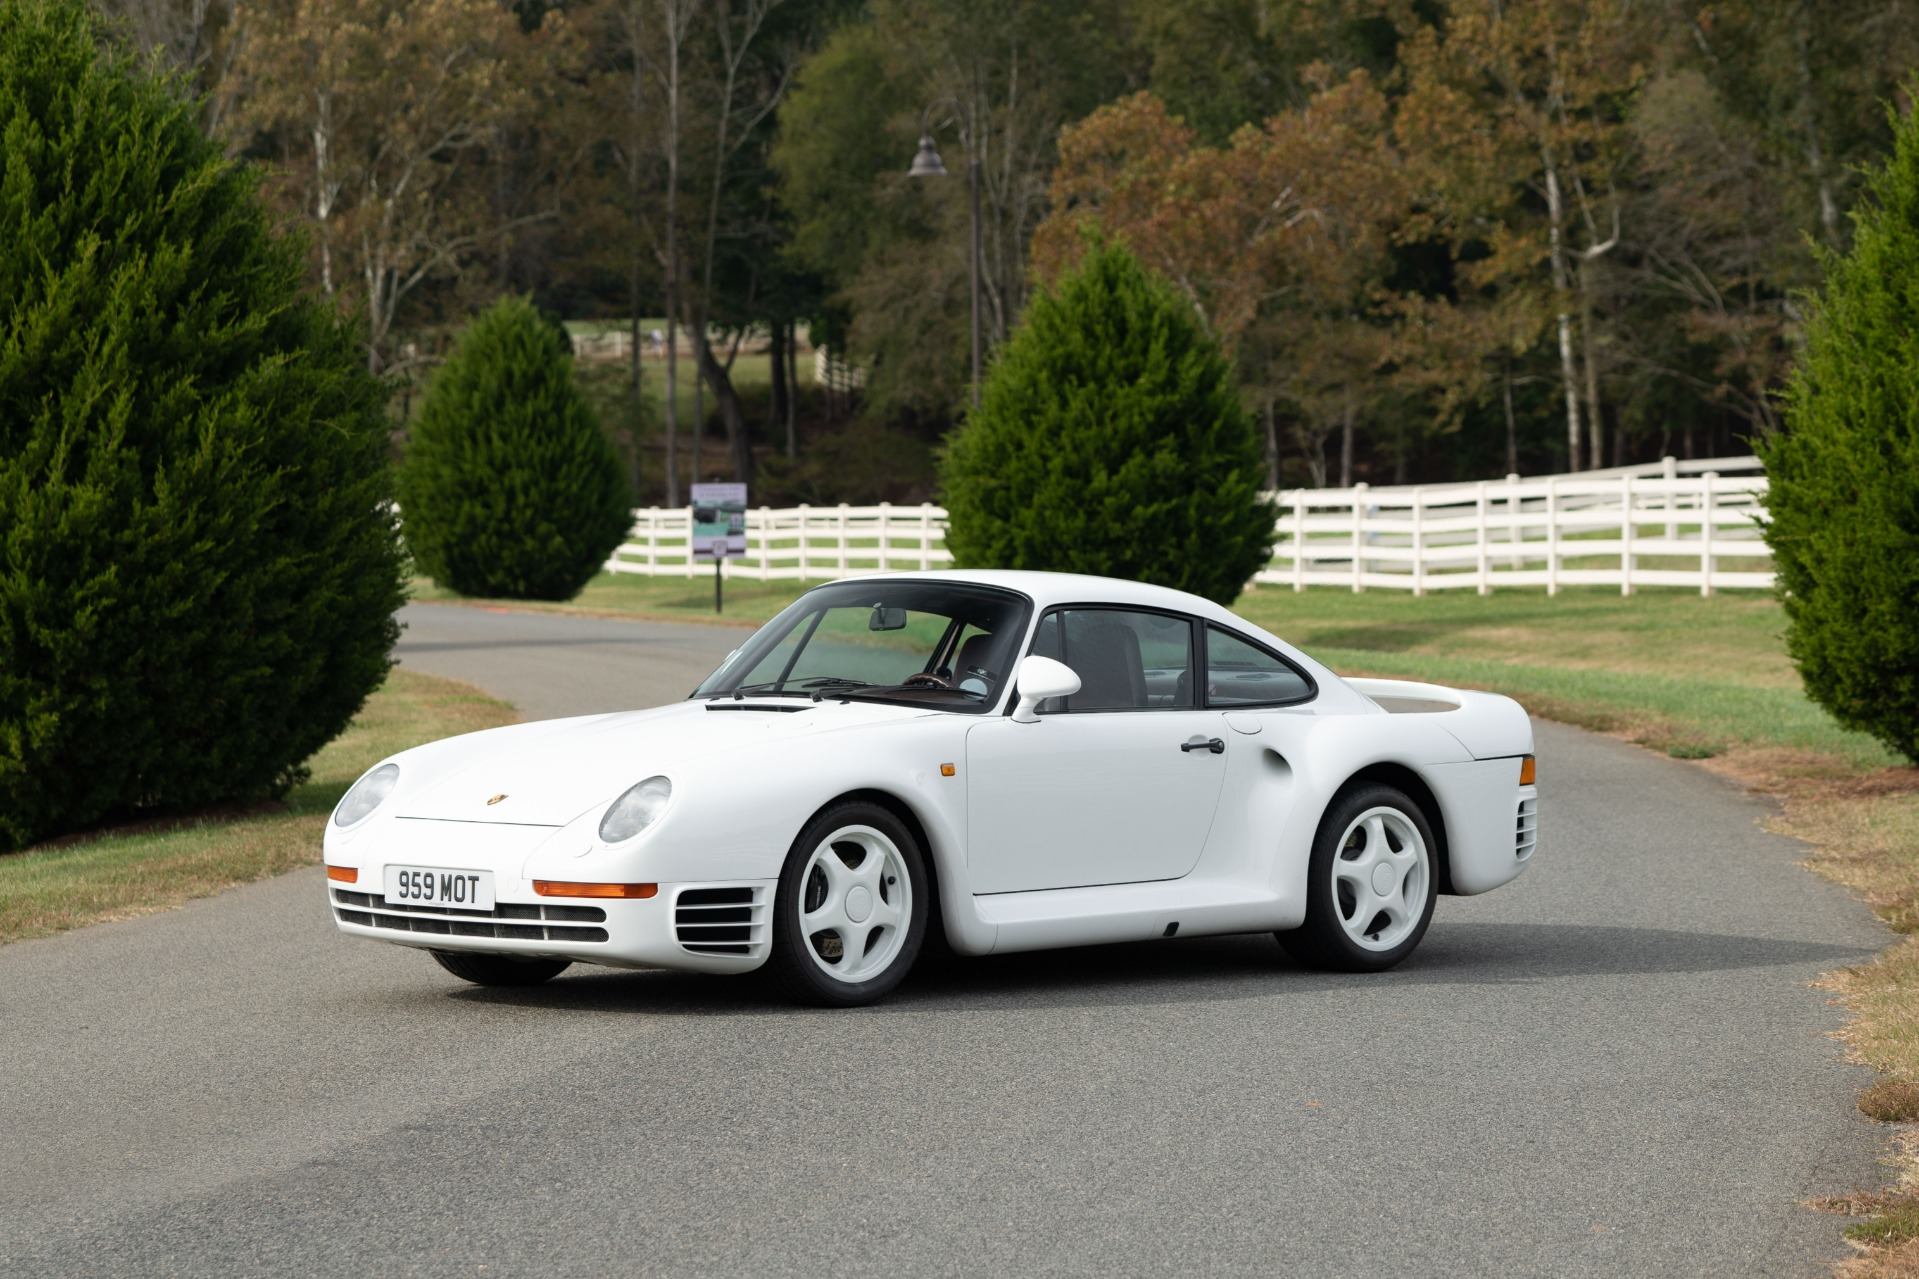 Used 1988 Porsche 959 KOMFORT COUPE / AWD / 6-SPEED MANUAL / ORIGINAL SUPERCAR for sale $1,425,000 at Formula Imports in Charlotte NC 28227 25